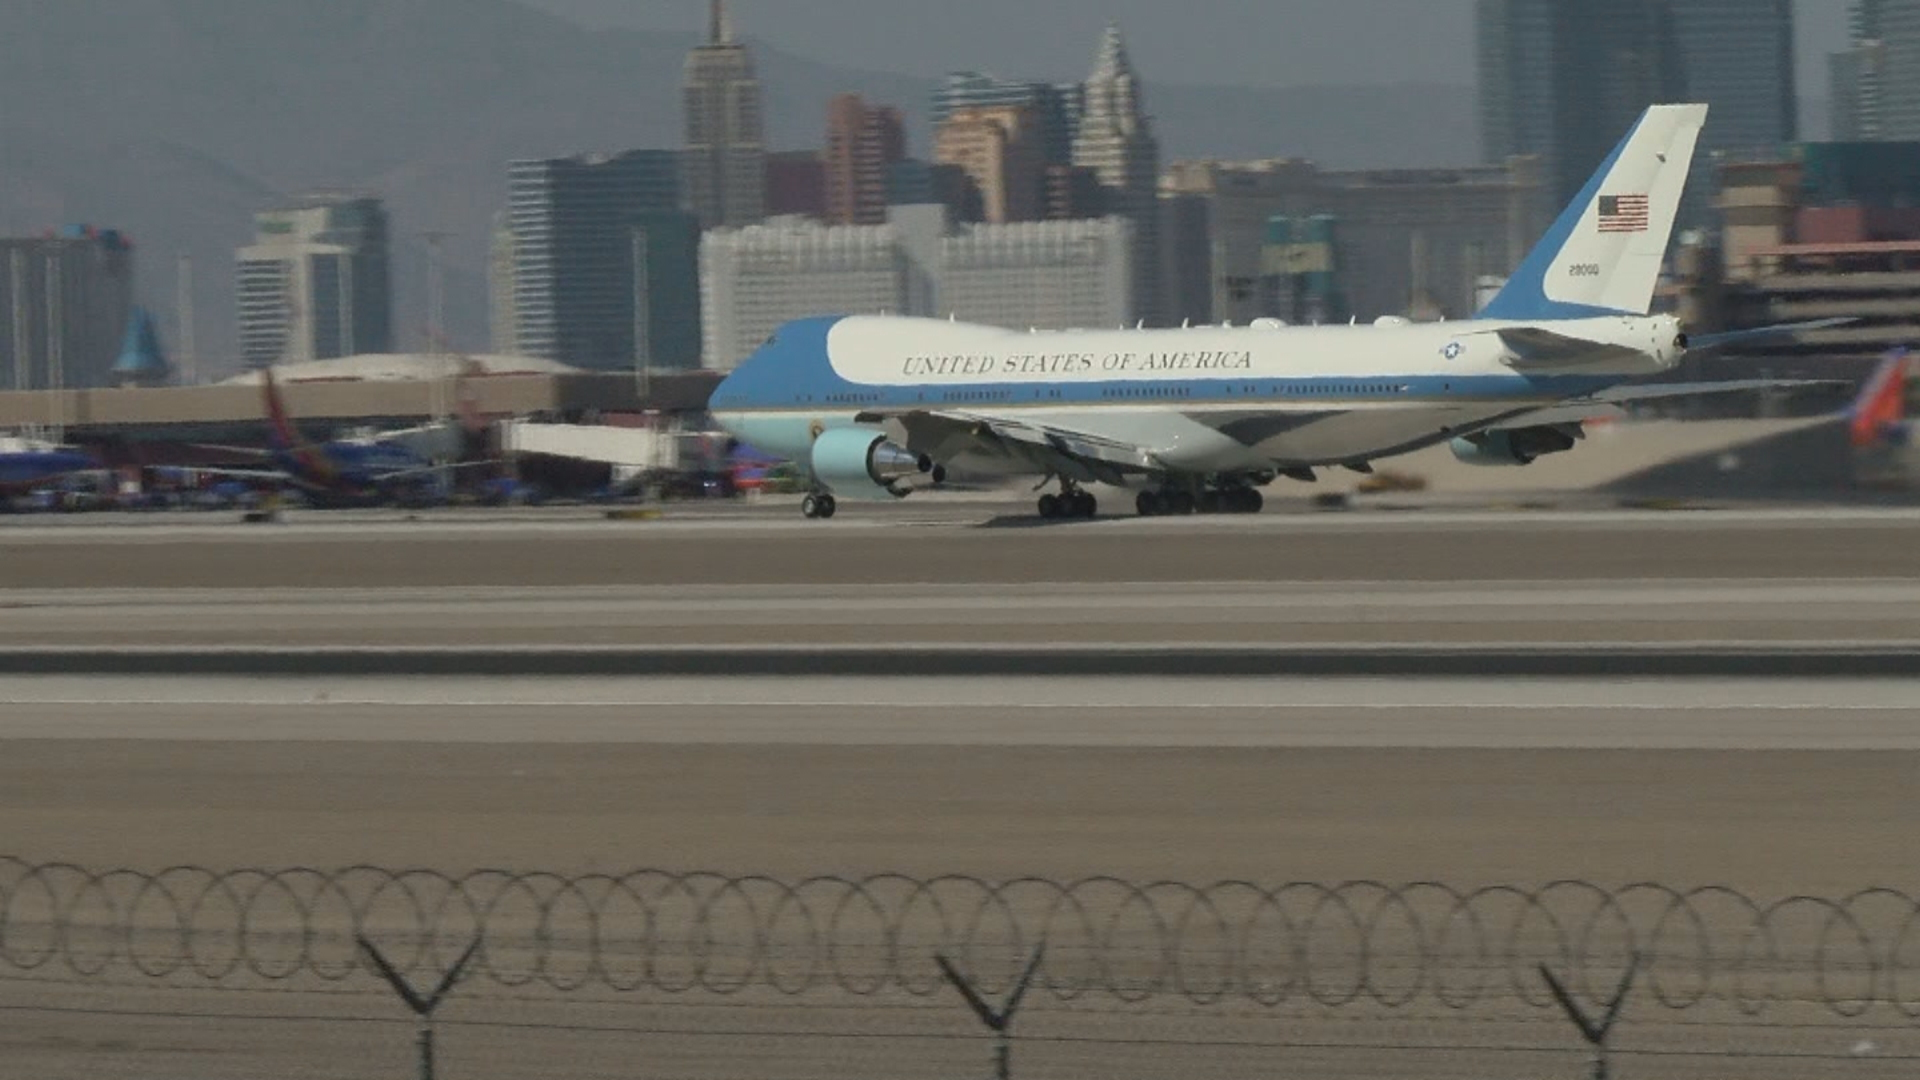 Air Force One takes off Wednesday, Oct. 4, 2017. from McCarran International Airport in Las Vegas. (Bradford Boyer/KSNV)